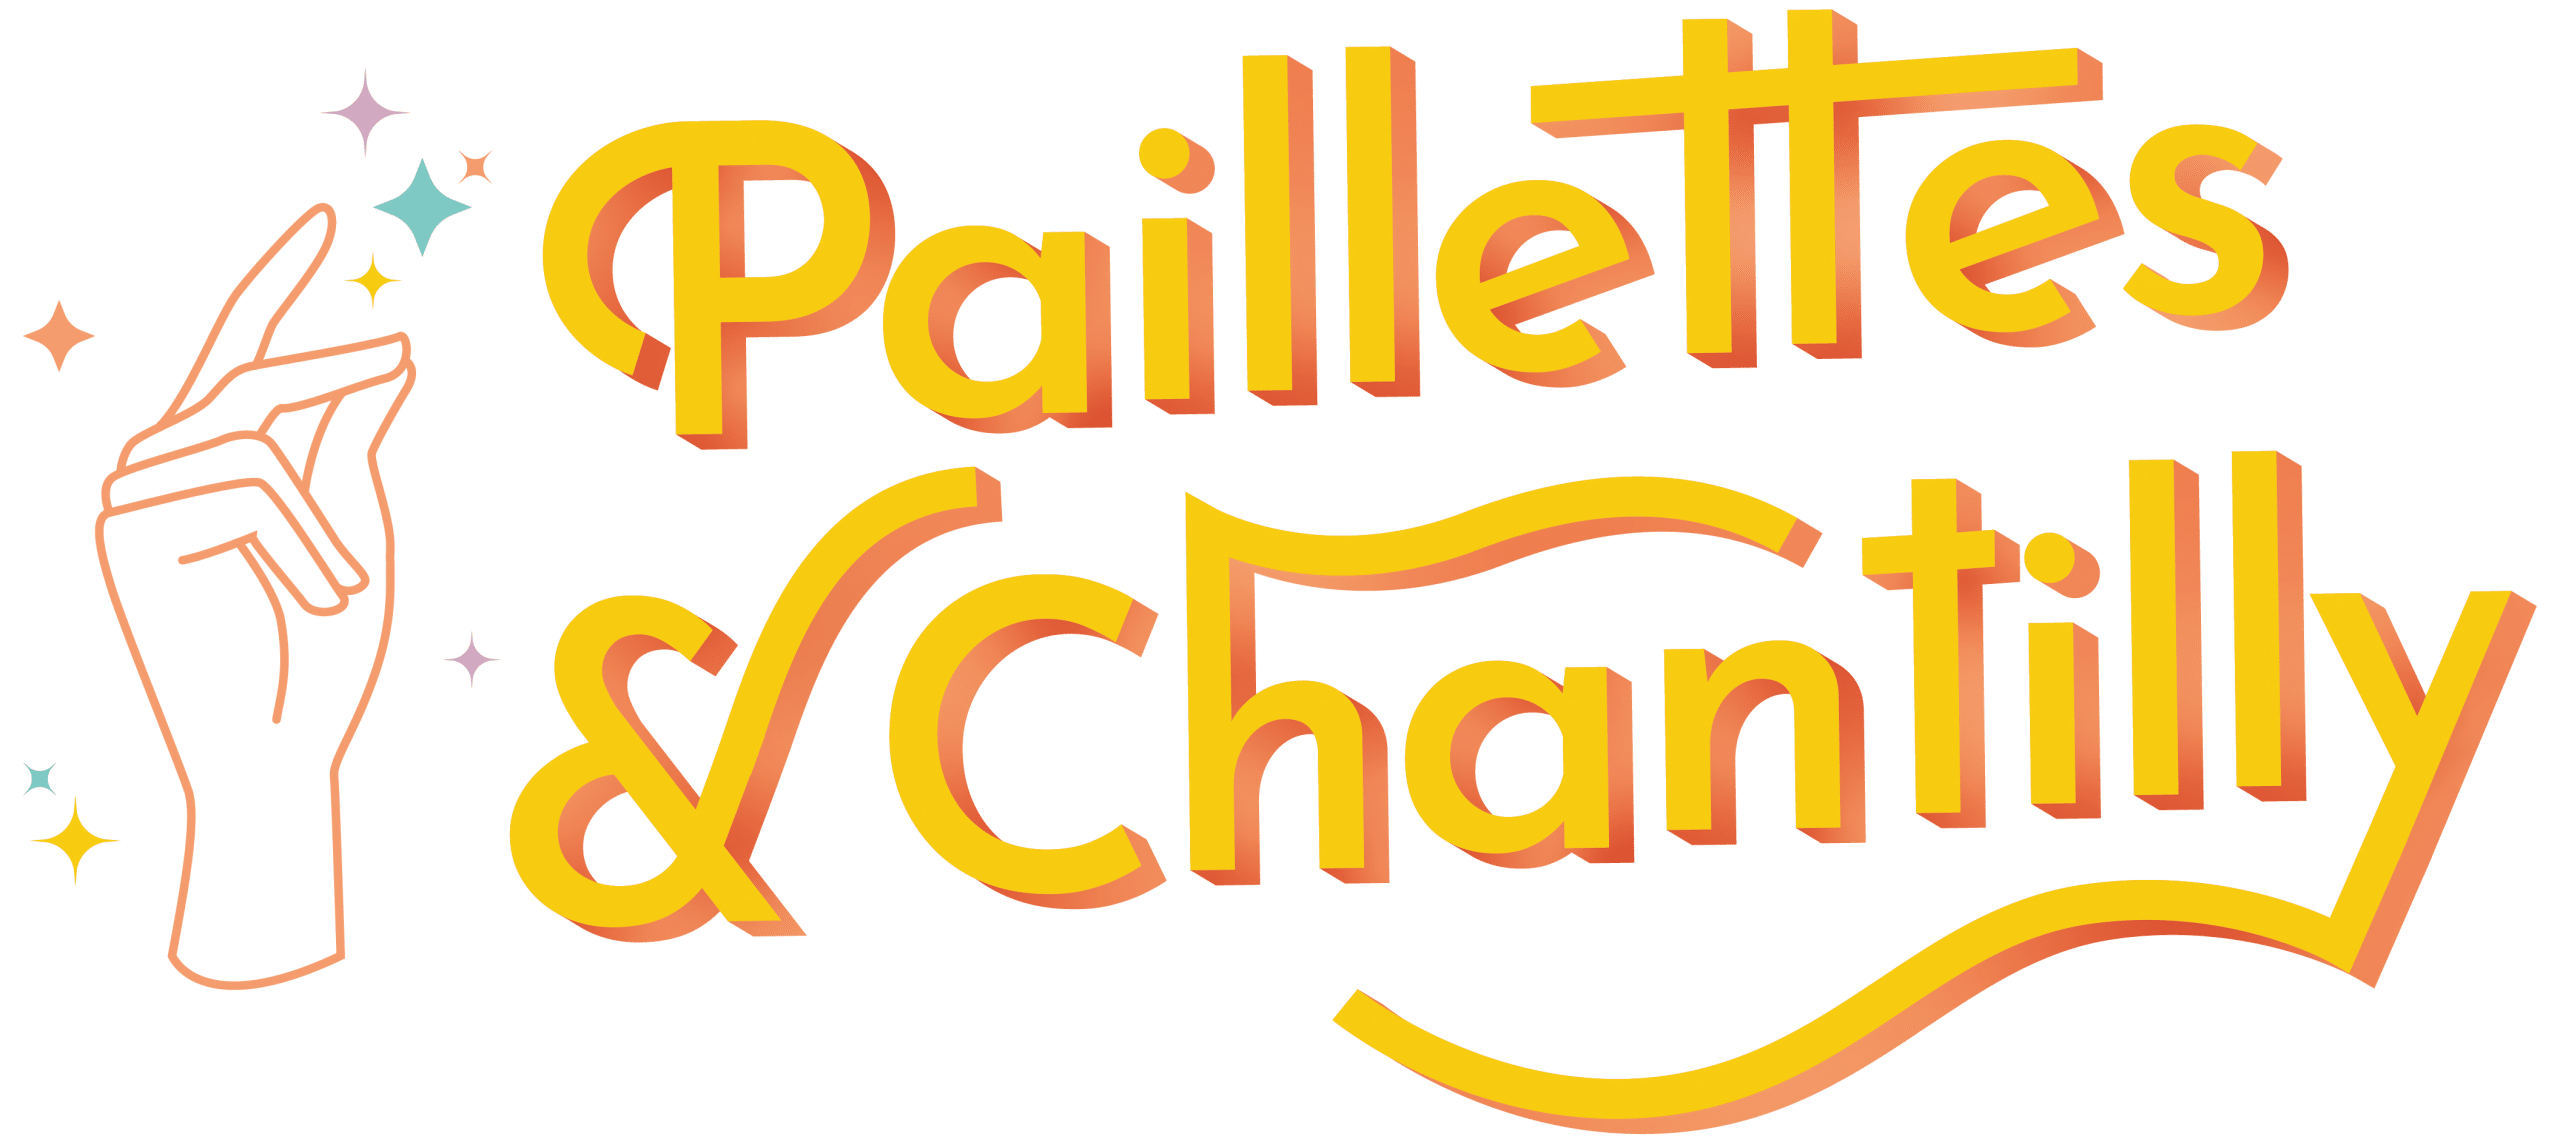 Logo paillettes & chantilly logo